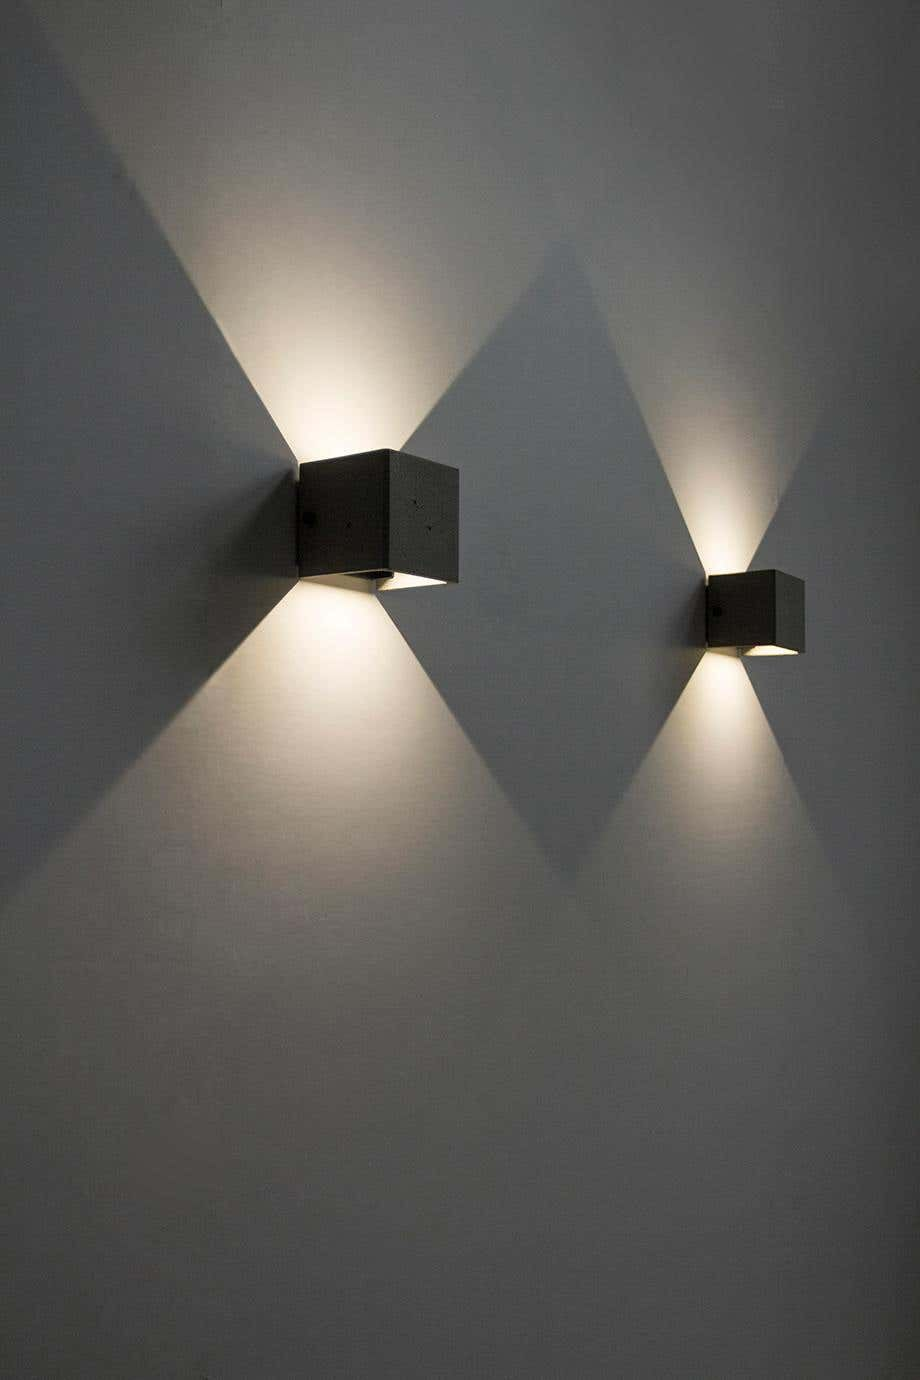 Concrete Wall Lamp Sconce Outdoor Lighting V Wall Lamp Design Wall Lamp Outdoor Wall Lamps